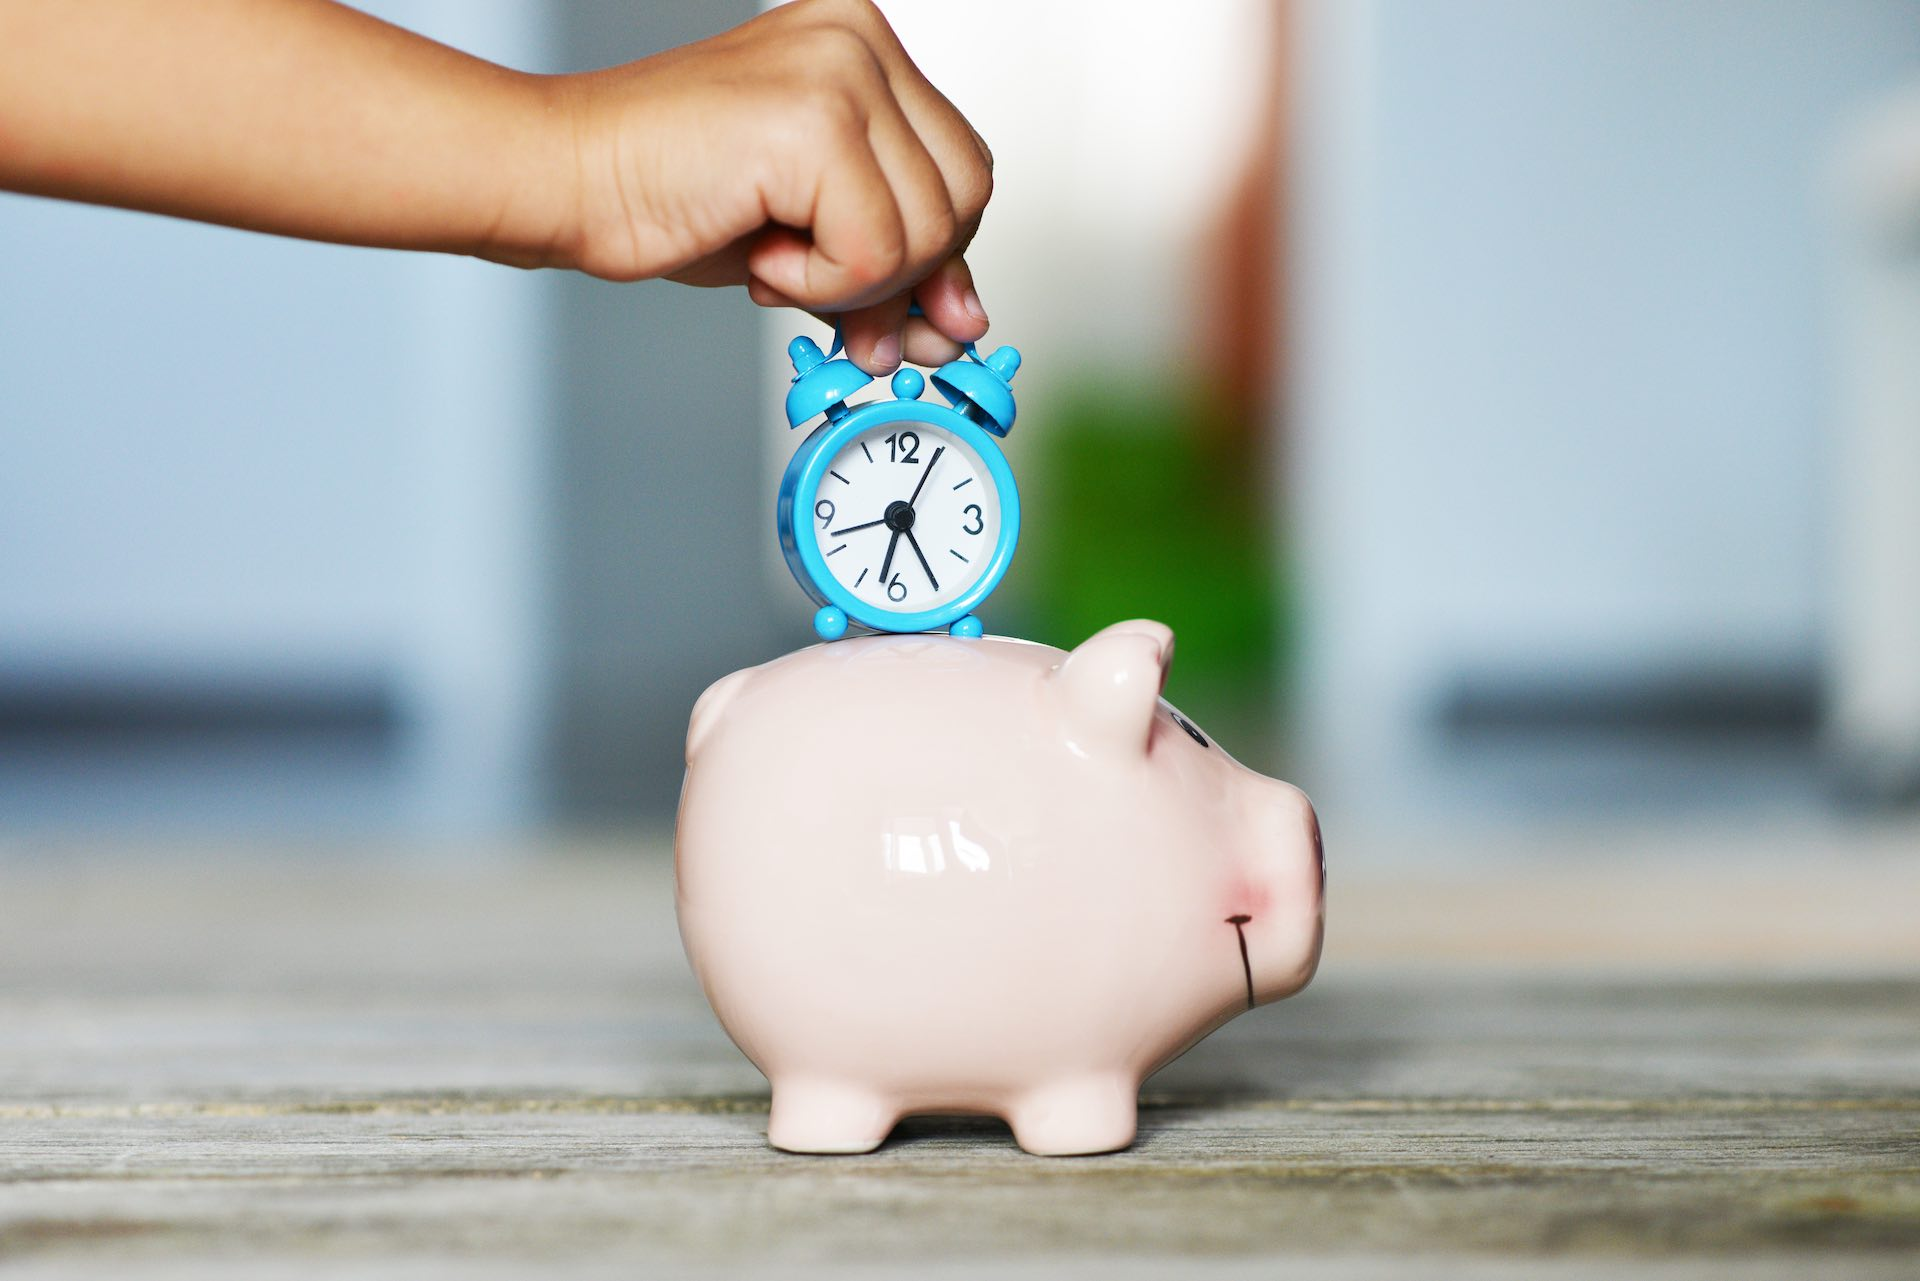 putting a clock on the piggy bank representing to save time